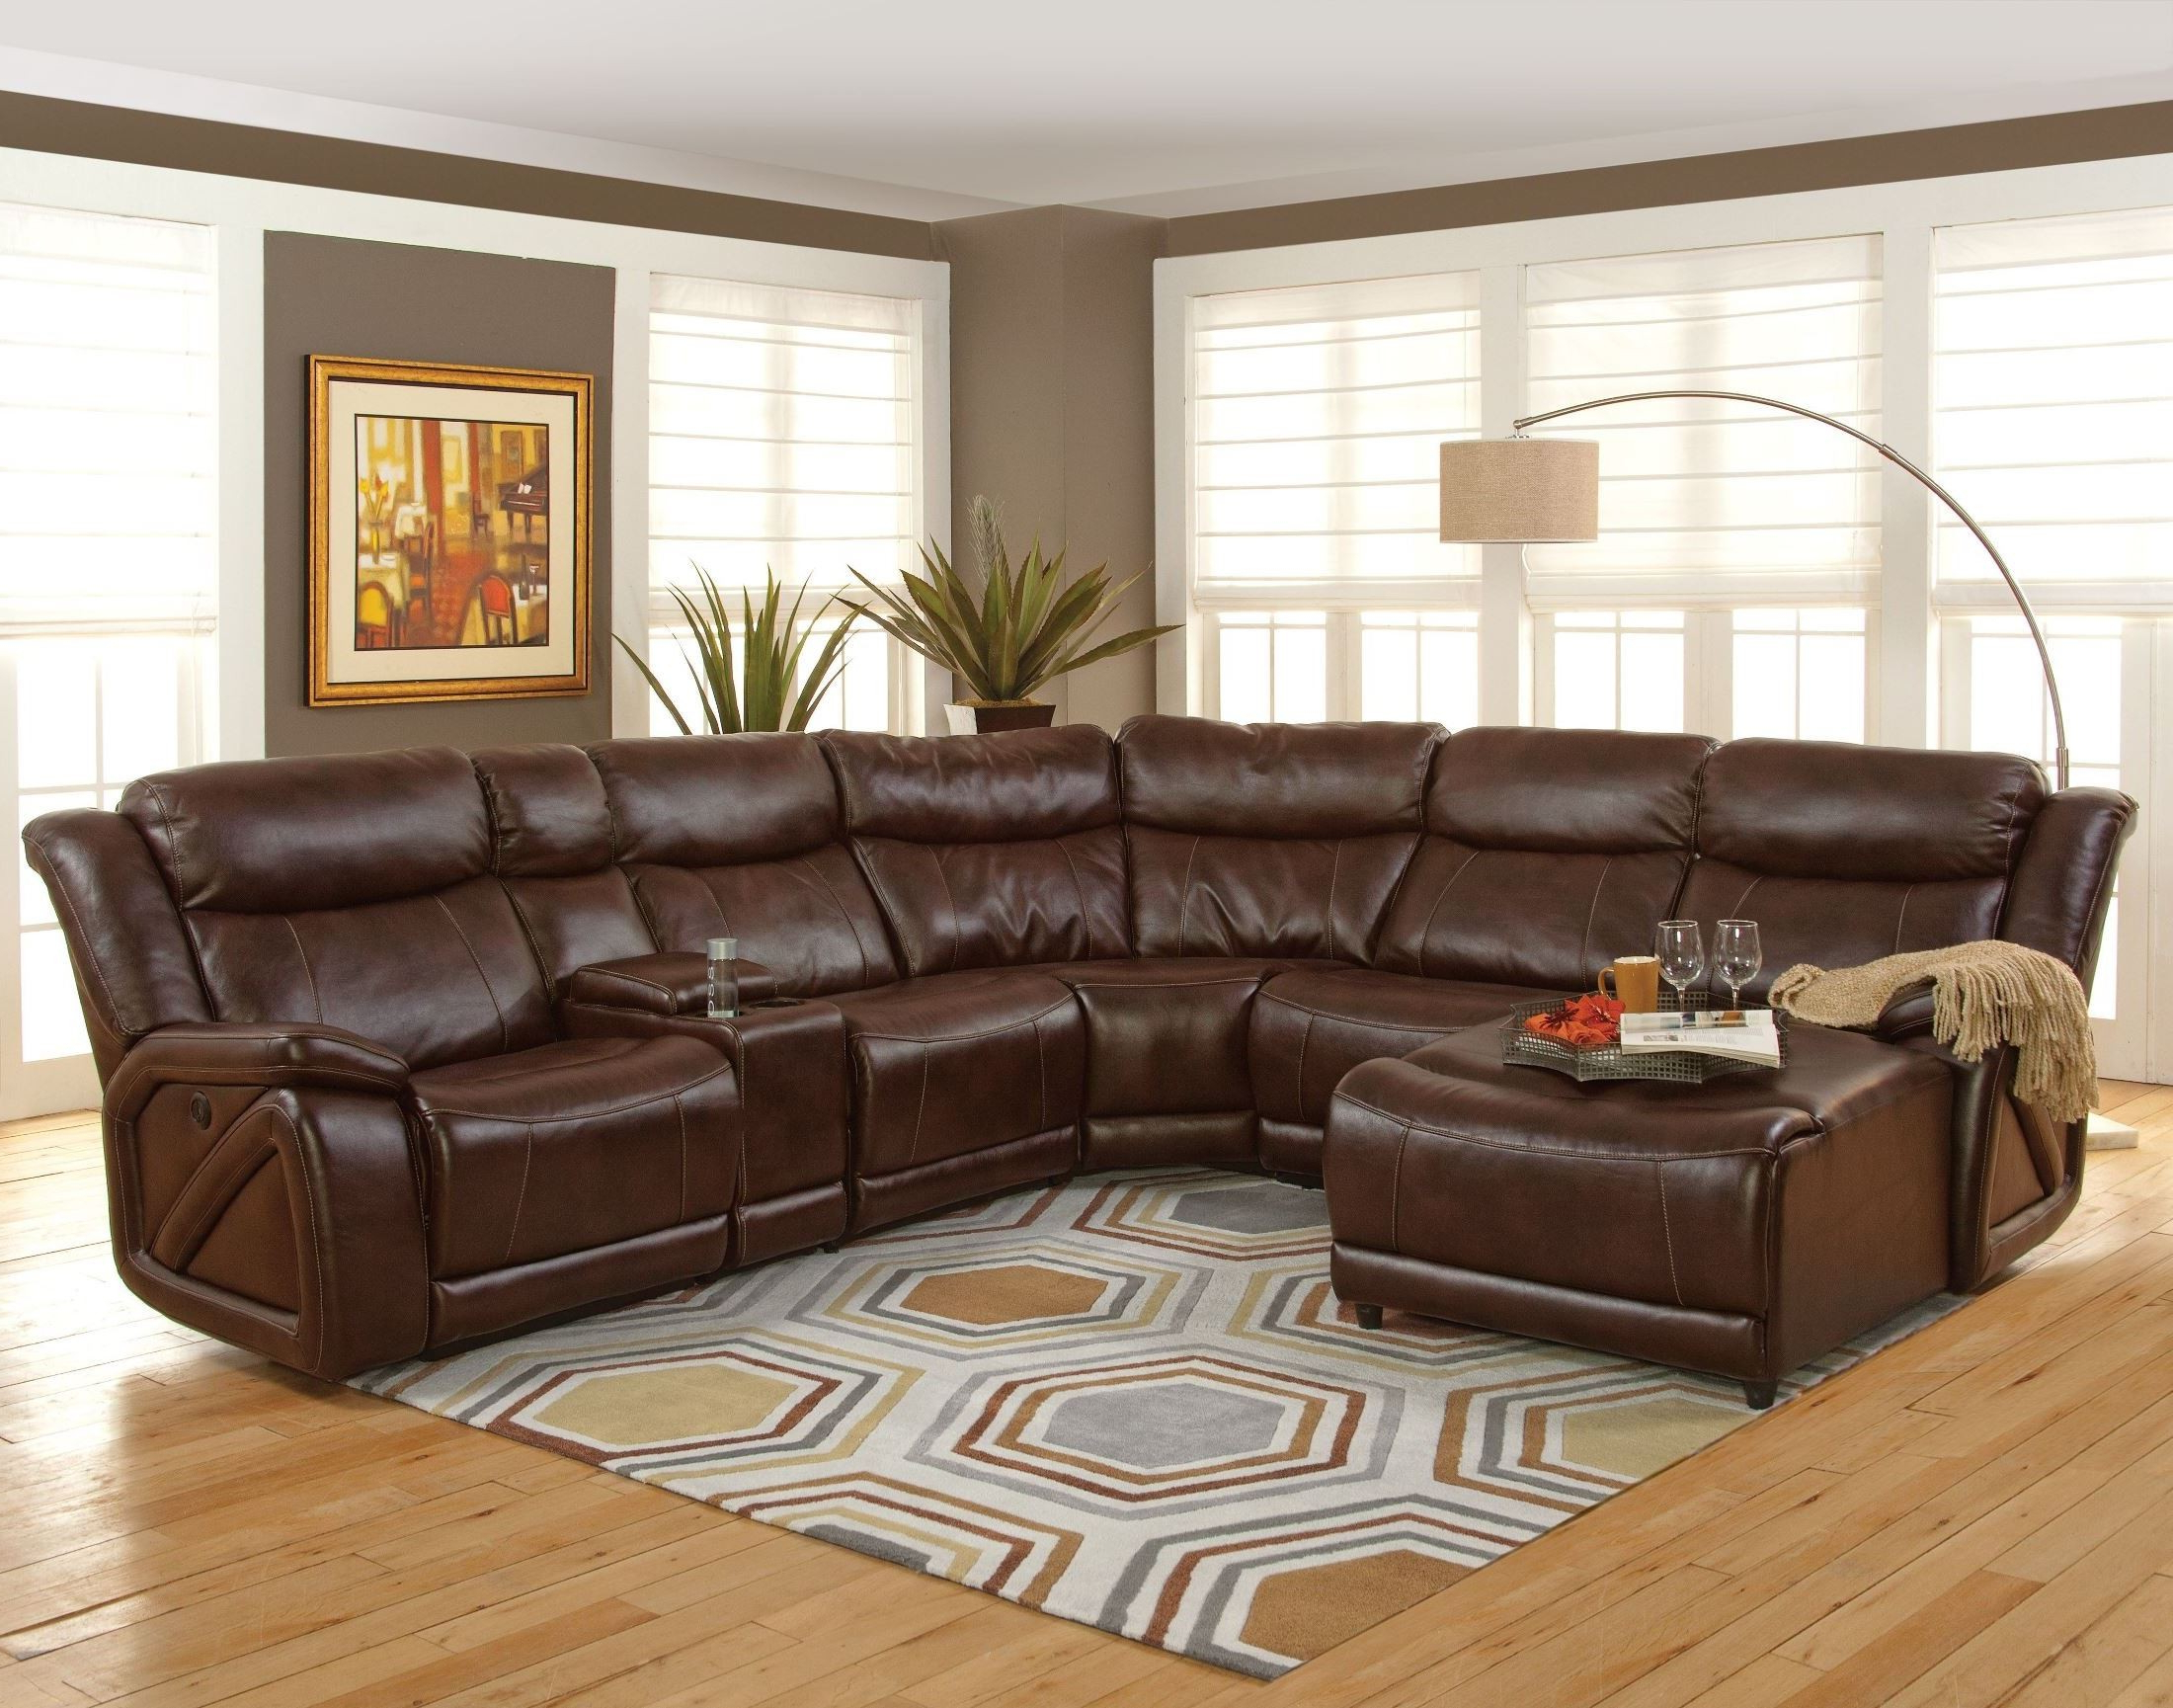 Turdur 3 Piece Sectionals With Raf Loveseat Inside Fashionable Park Place Premier Brown Laf Sectional From New Classics (20 225 17L (View 18 of 20)